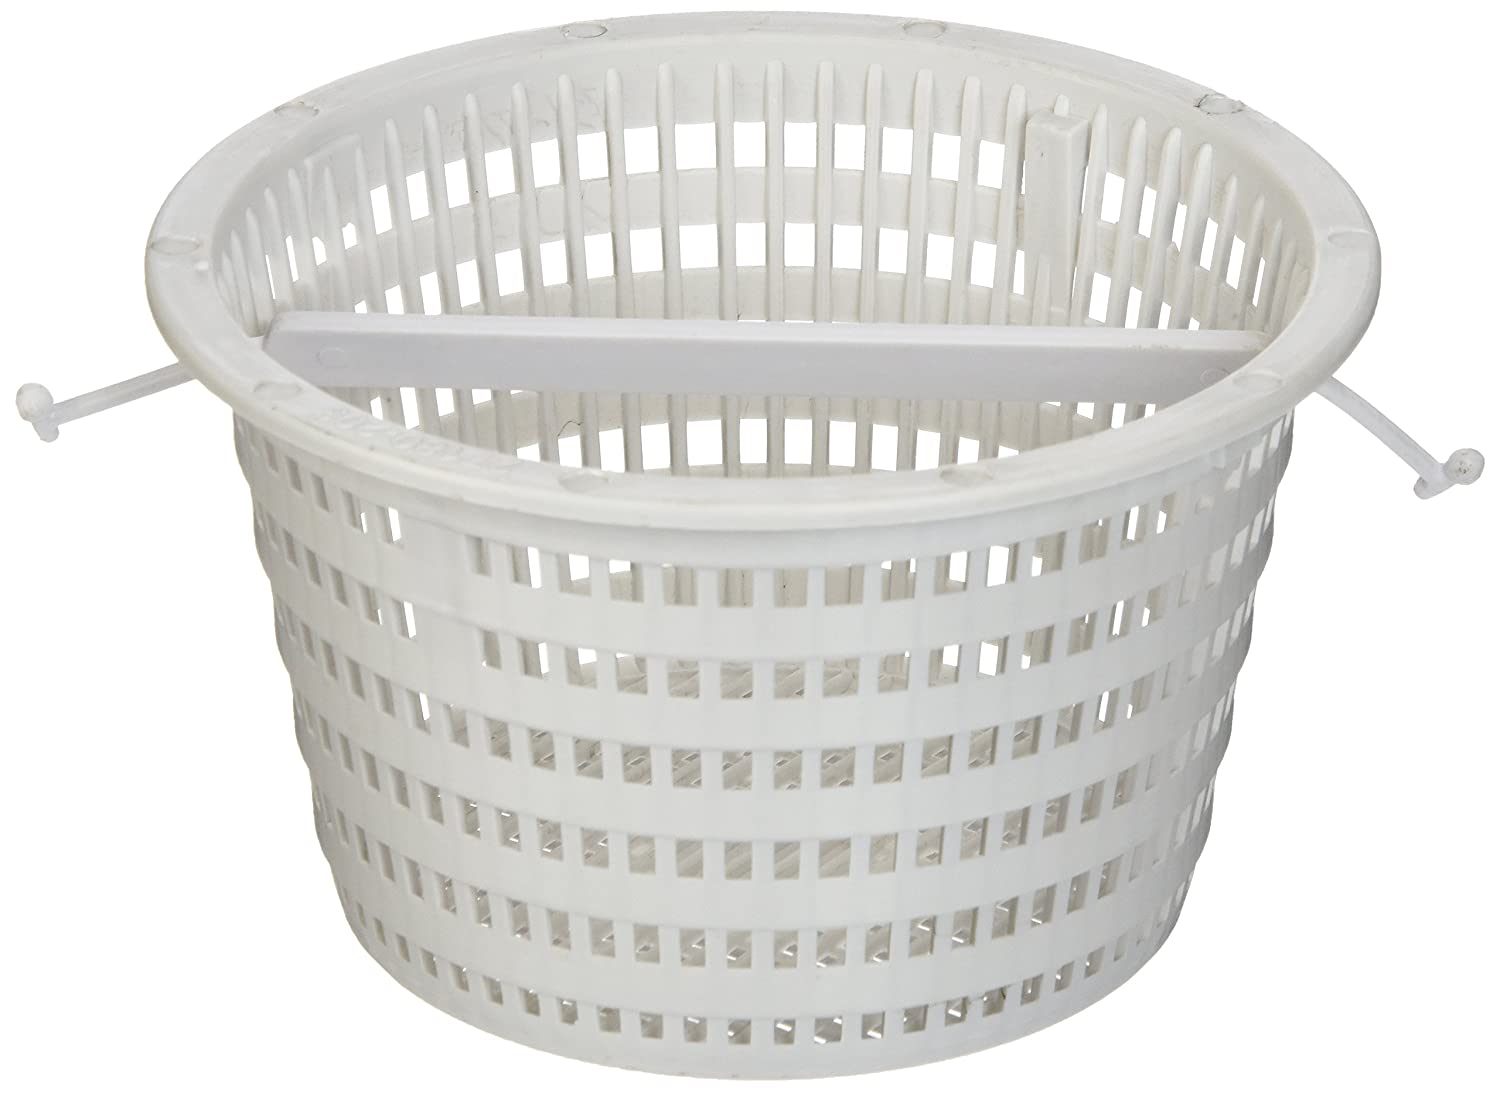 Aladdin B203 Pool Skimmer Basket for Hayward SP-1094-FA B-203